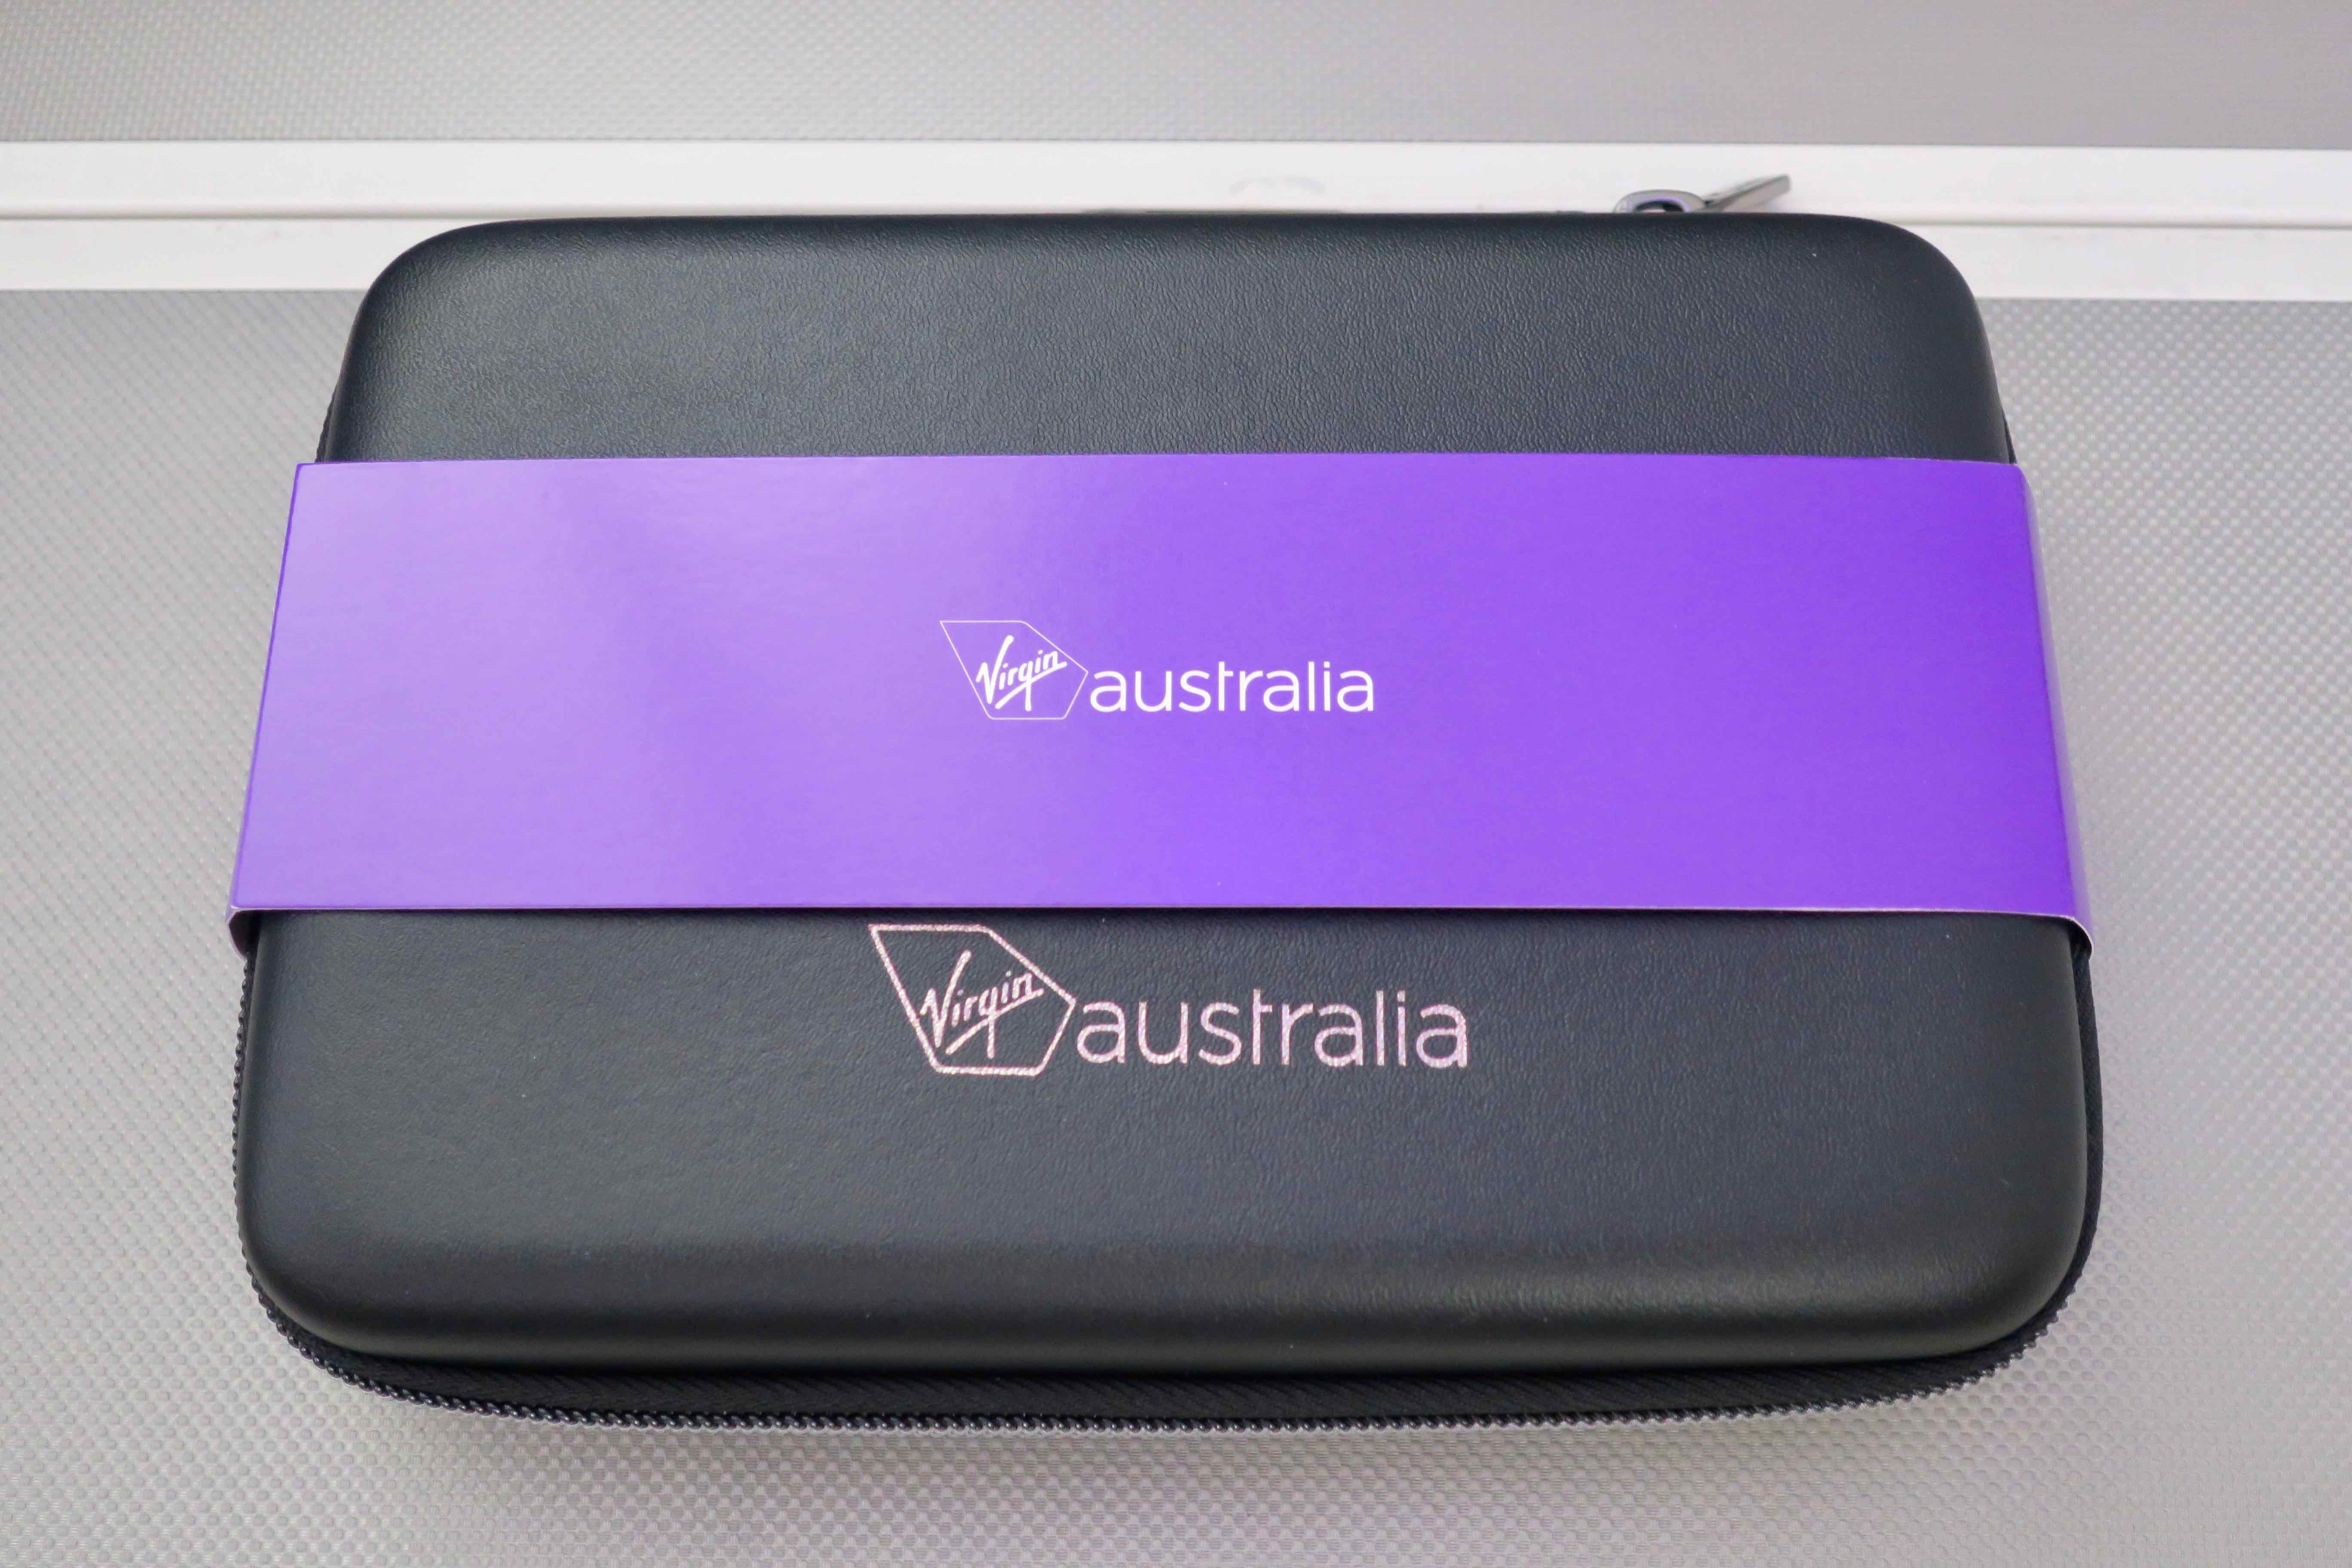 Virgin Australia A330 Business Class amenities kit